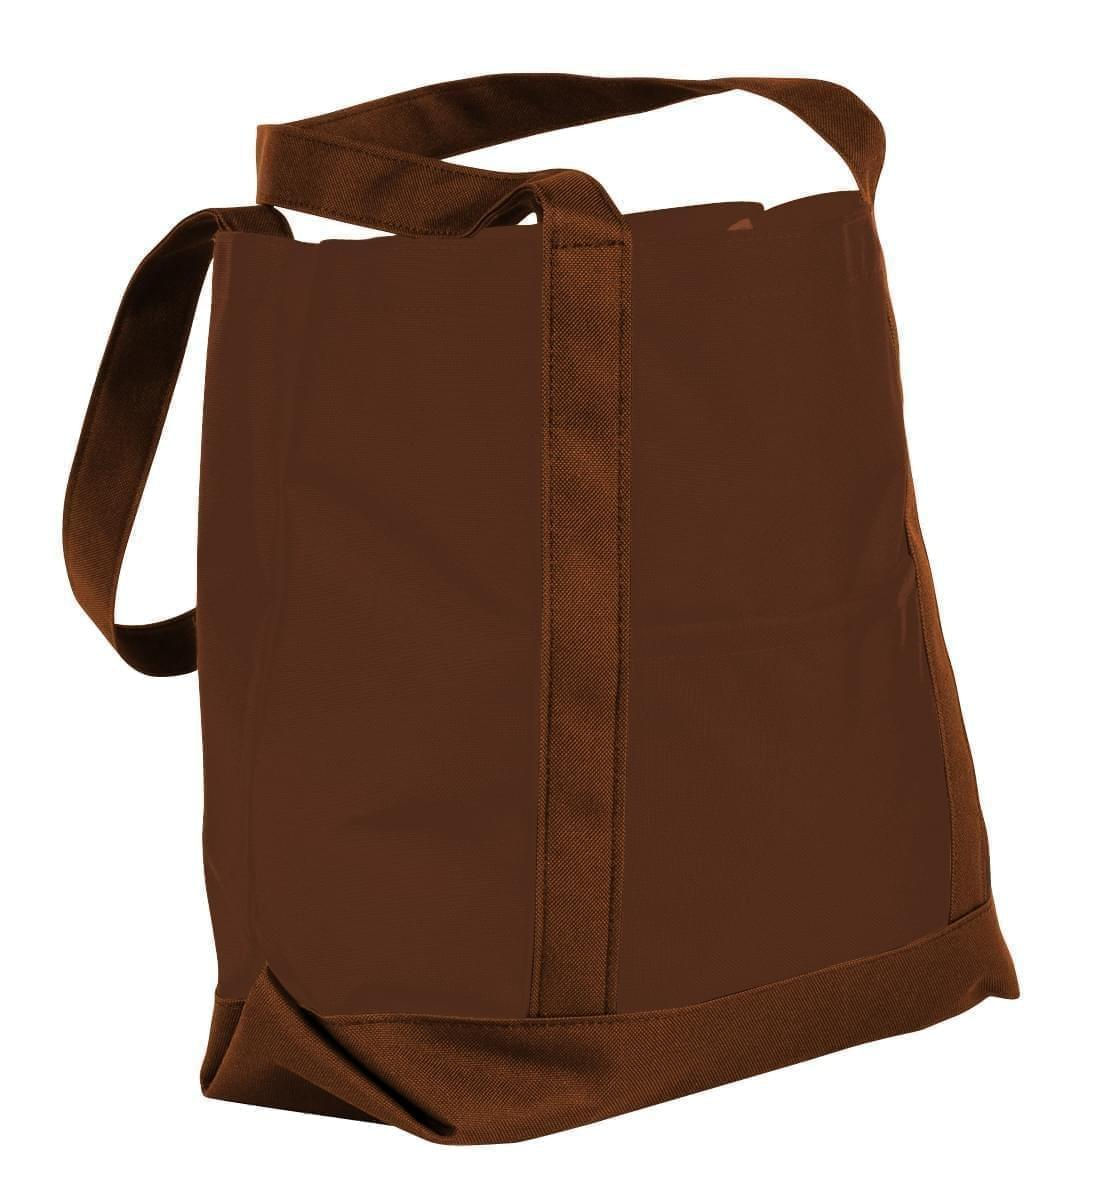 USA Made Nylon Poly Boat Tote Bags, Brown-Brown, XAACL1UAPD